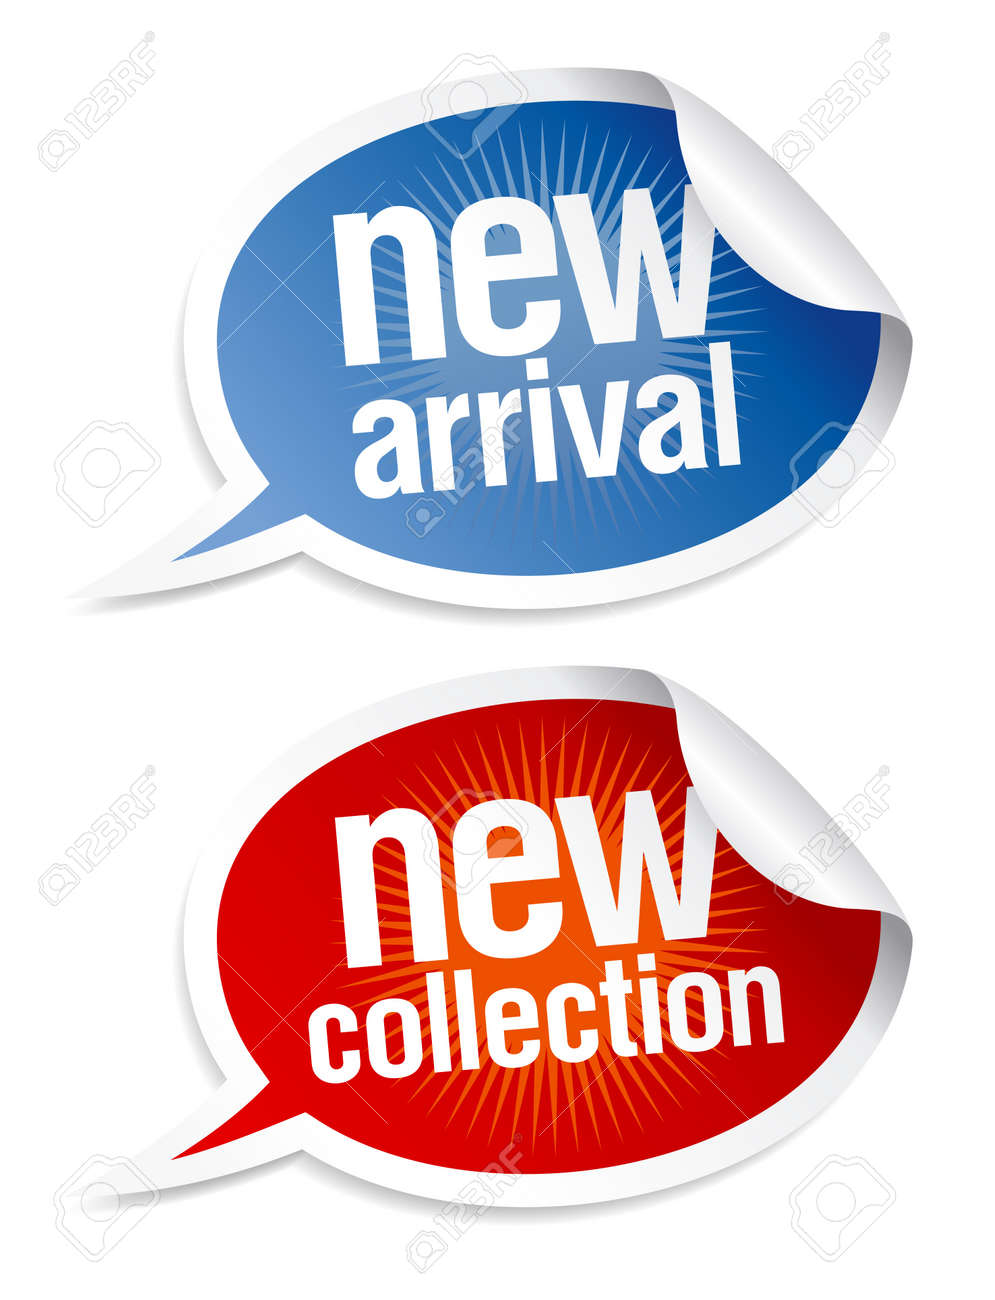 New collection stickers set in form of speech bubbles. - 10957430